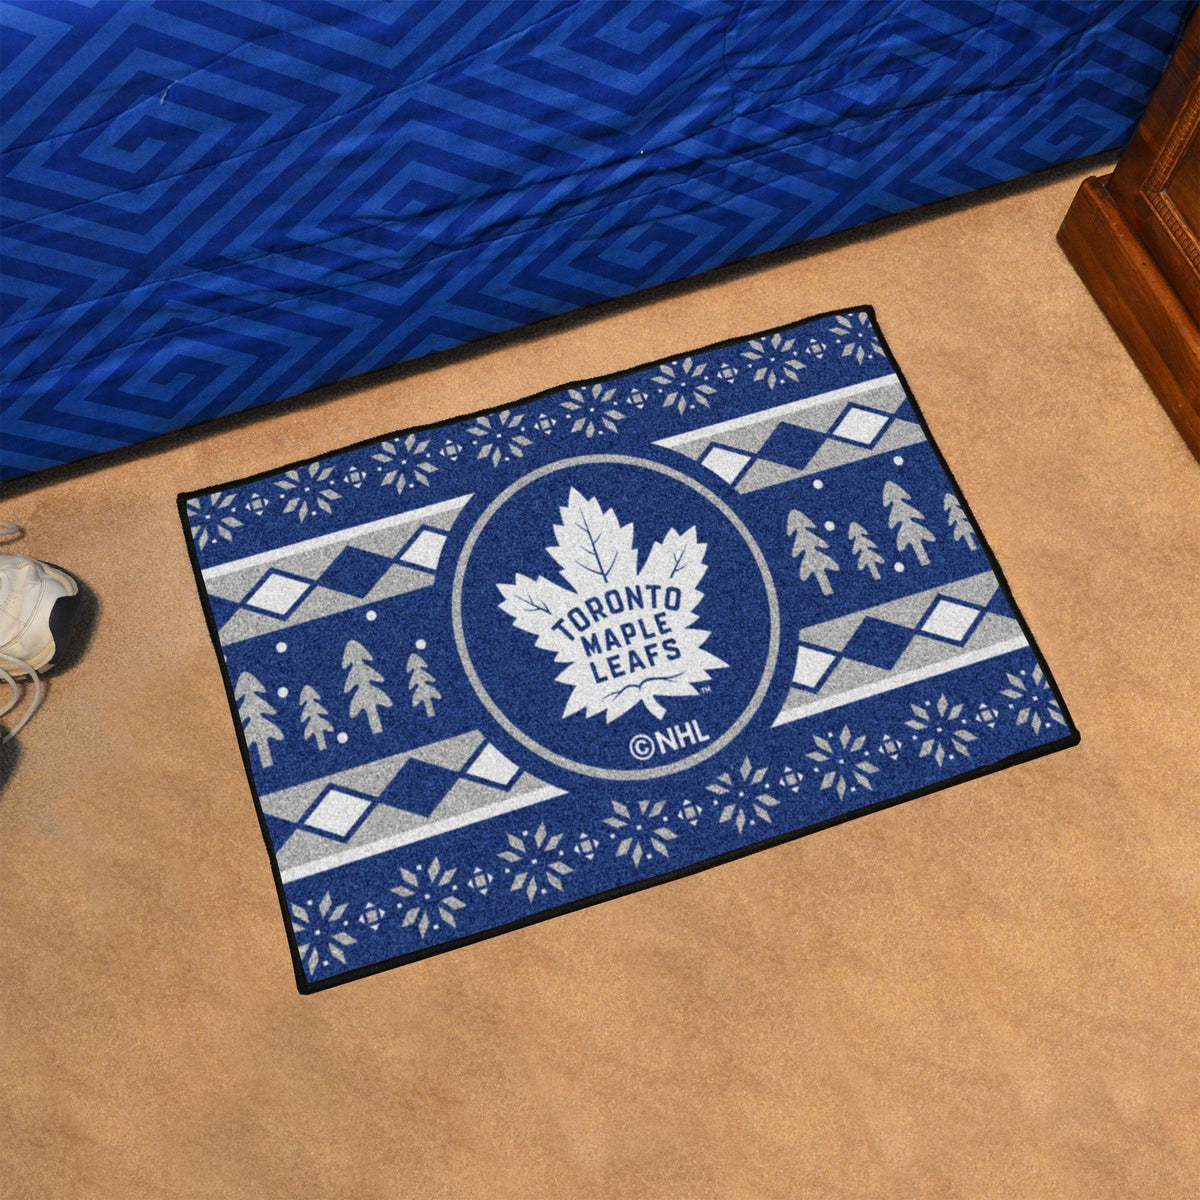 NHL - Holiday Sweater Starter Mat NHL Mats, Rectangular Mats, Holiday Sweater Starter Mat, NHL, Home Fan Mats Toronto Maple Leafs